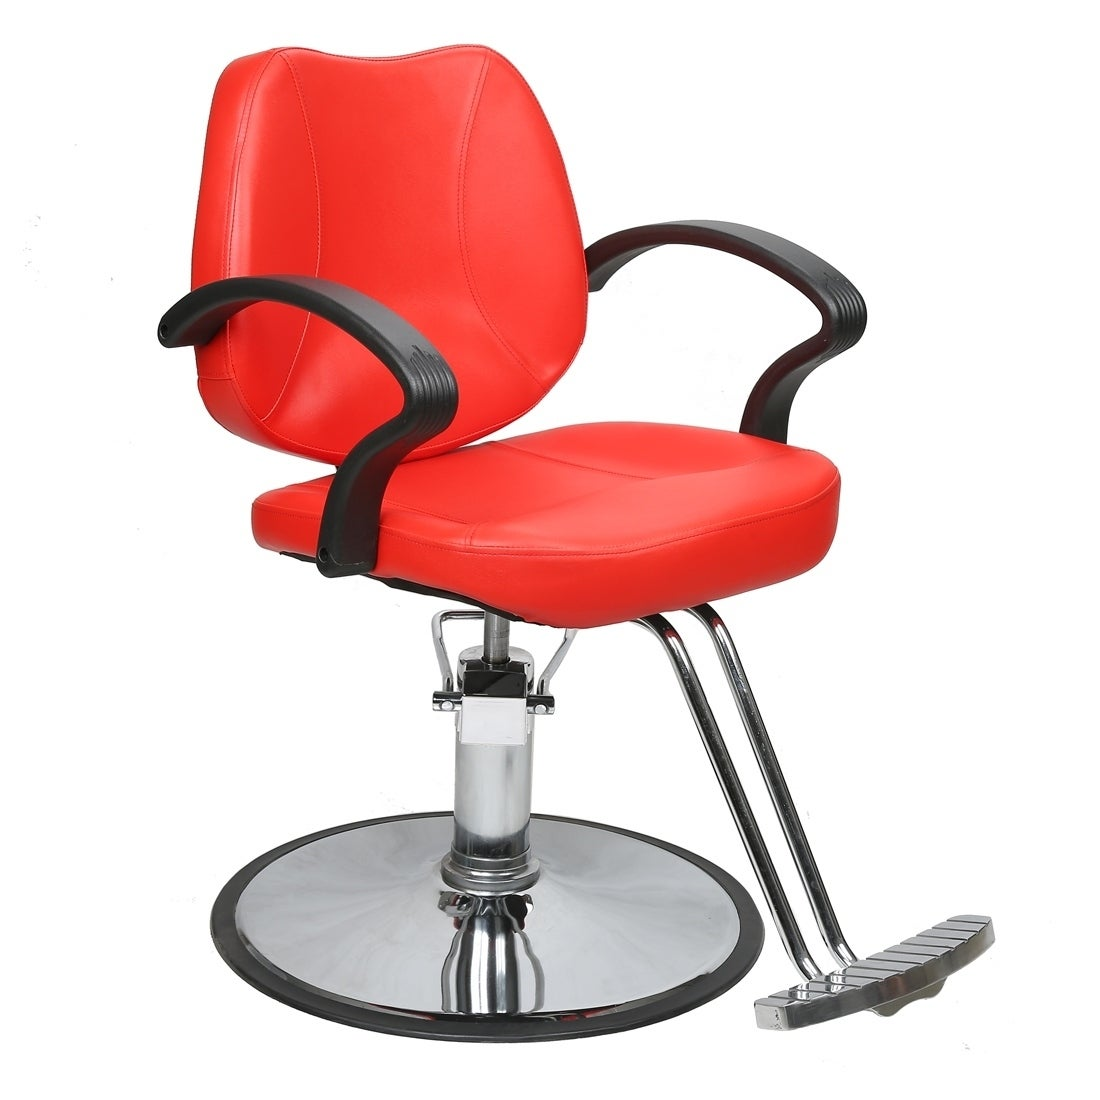 BarberPub Classic Hydraulic Salon Beauty Spa Hair Styling Barber Chair    Free Shipping Today   Overstock   23485864